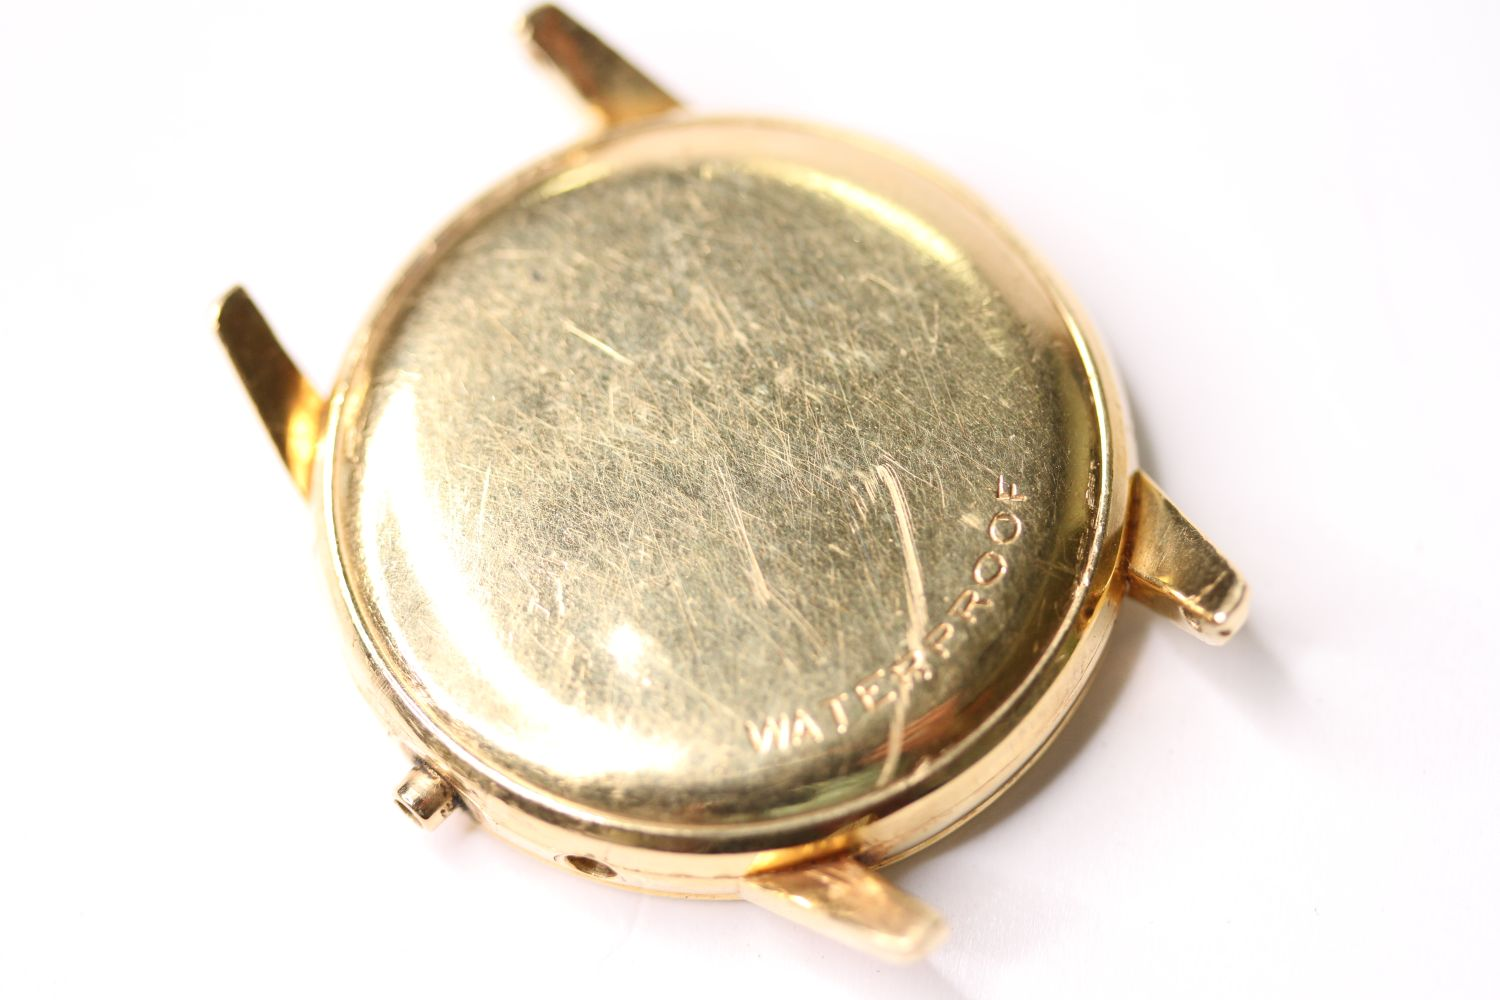 18CT OMEGA CASE, 35mm 18ct gold case, reads omega watch co, fab suisse, swiss made, 11479504, OT - Image 3 of 3